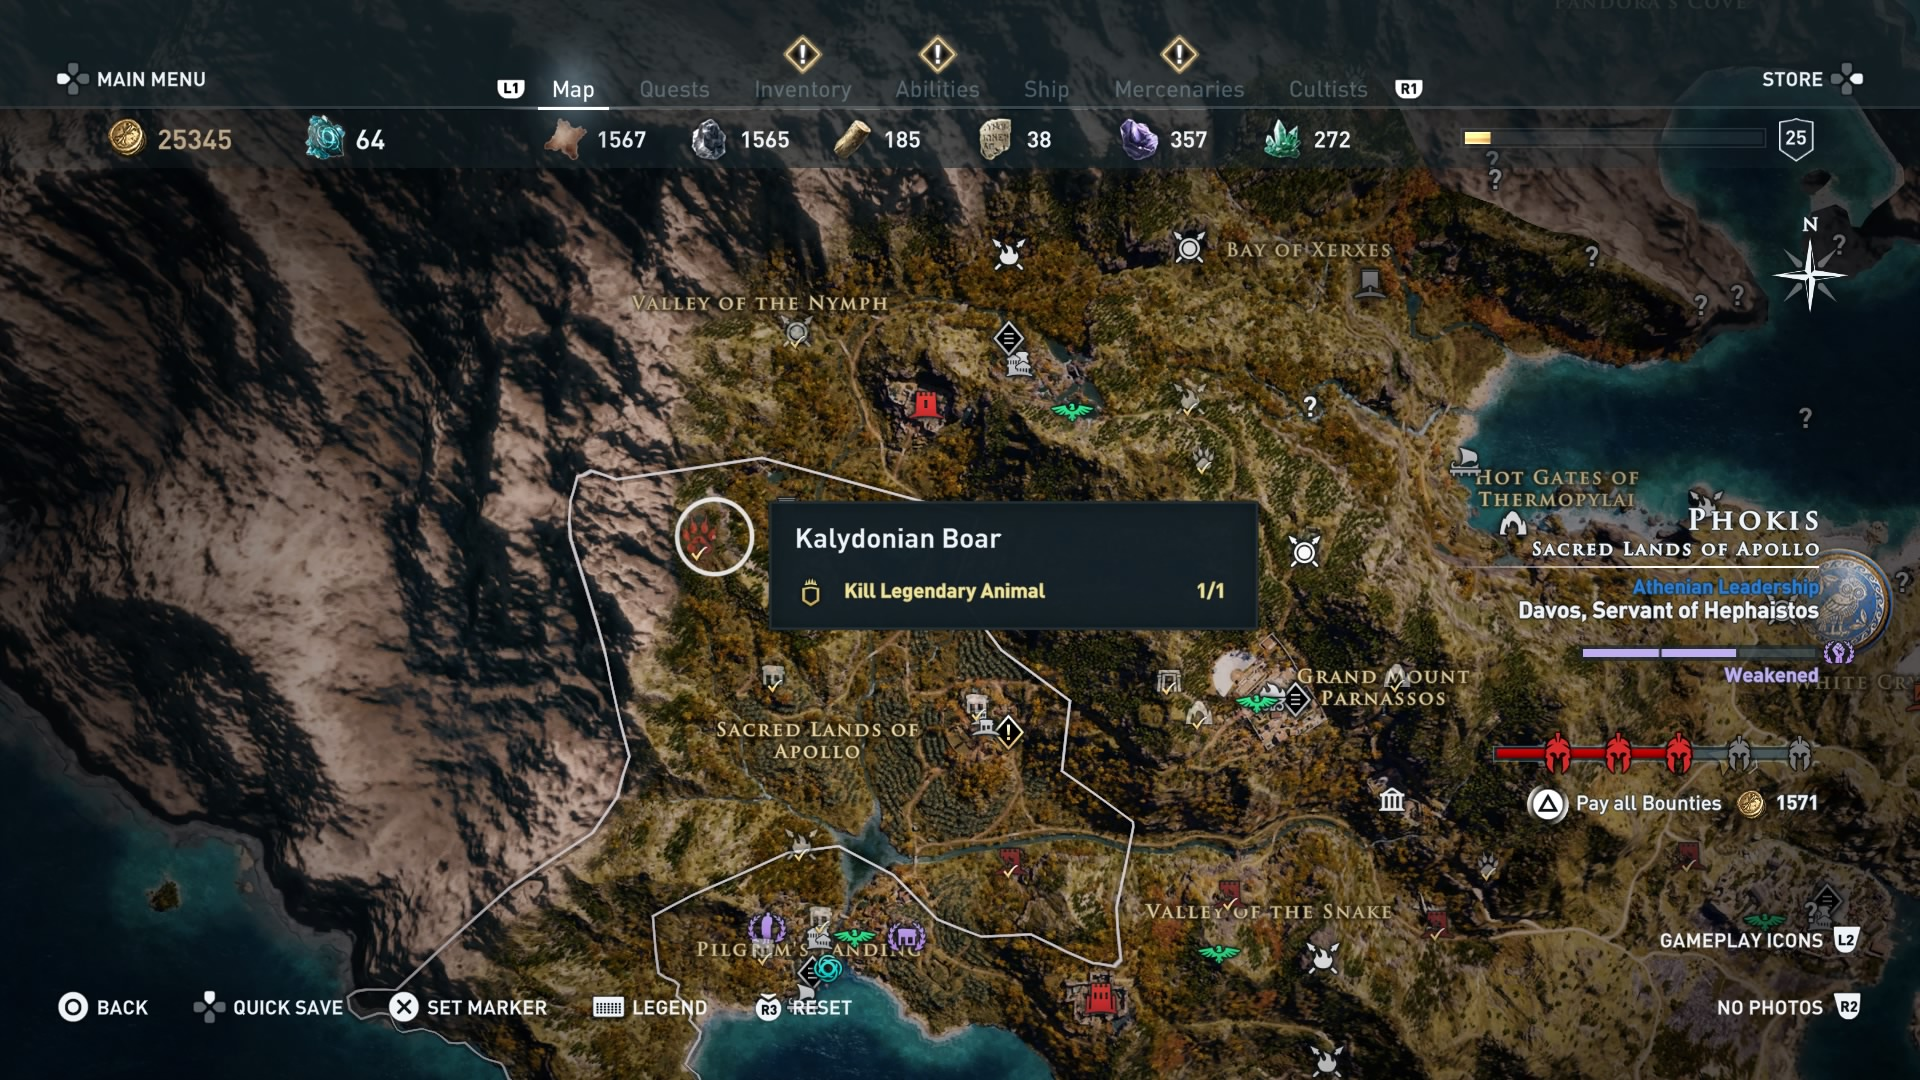 Assassin's Creed Odyssey: How to kill Kalydonian Boar, Hind